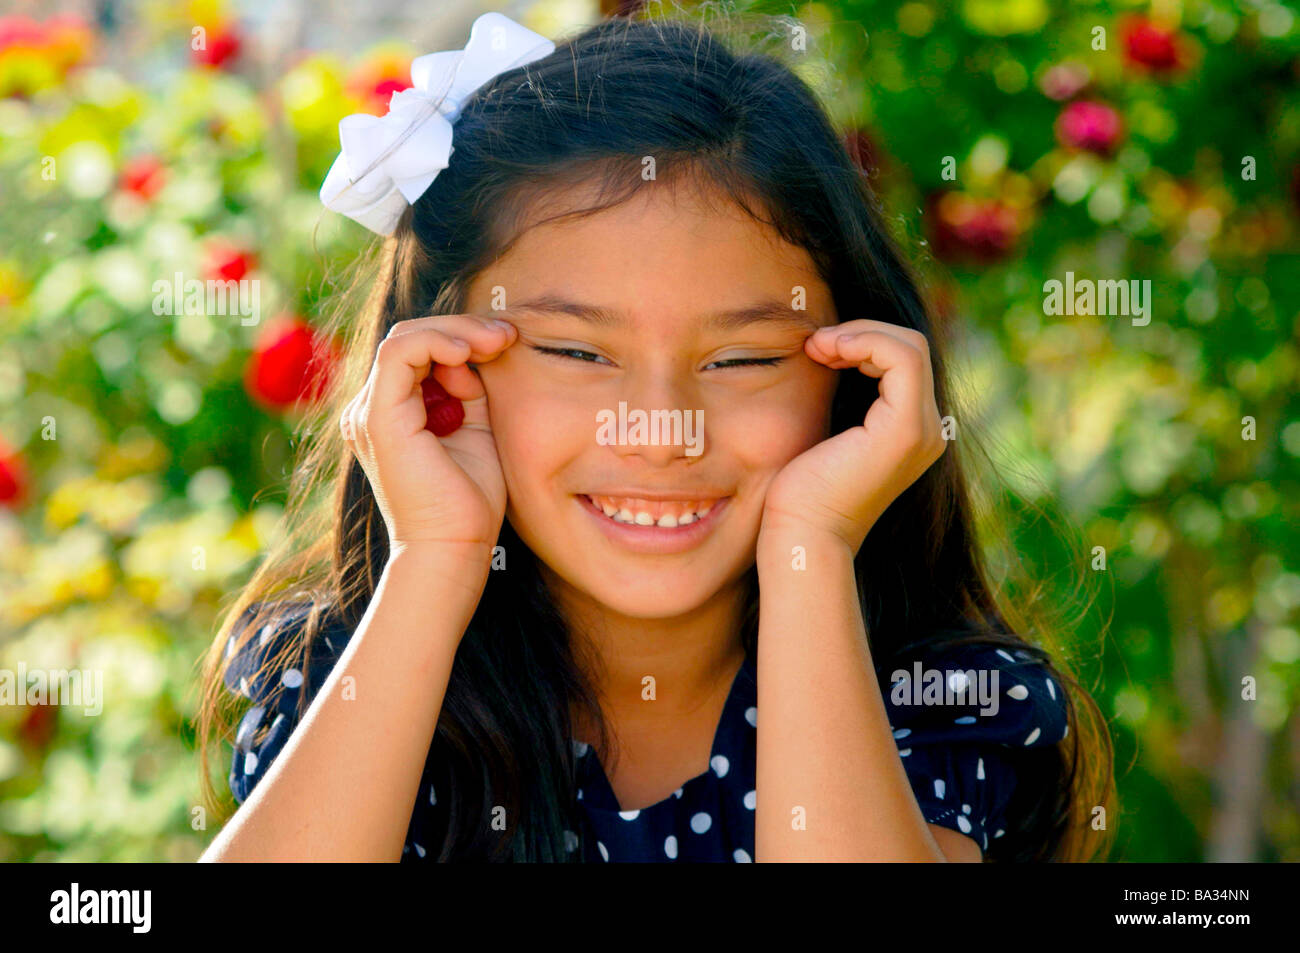 Cute young hispanic female clown et faire les yeux chinois Photo Stock